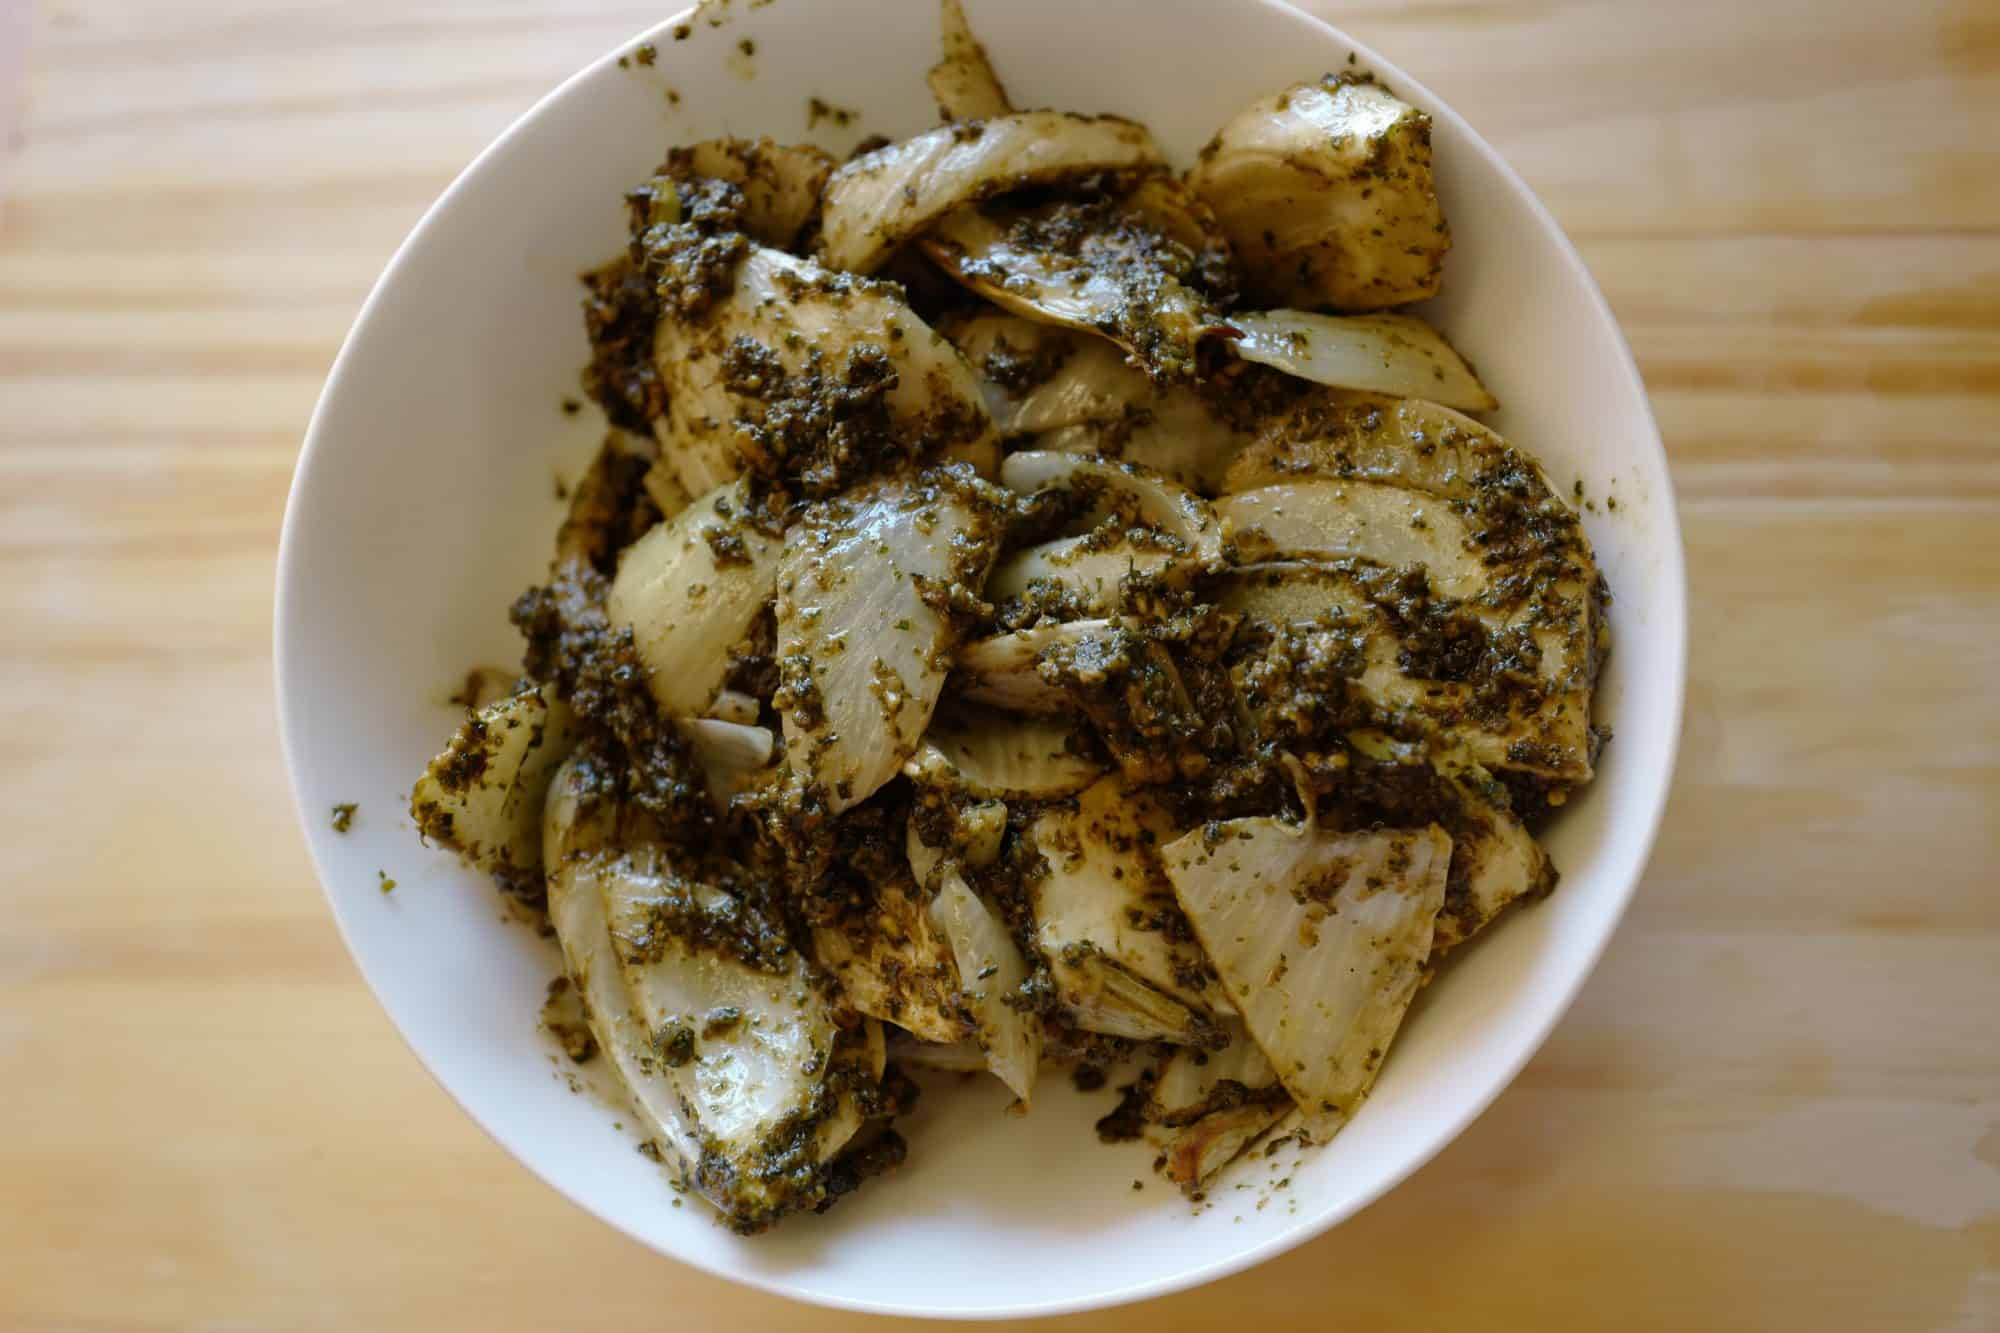 Roasted Fennel + Pesto with Pistachio and Mint by Foodjoya